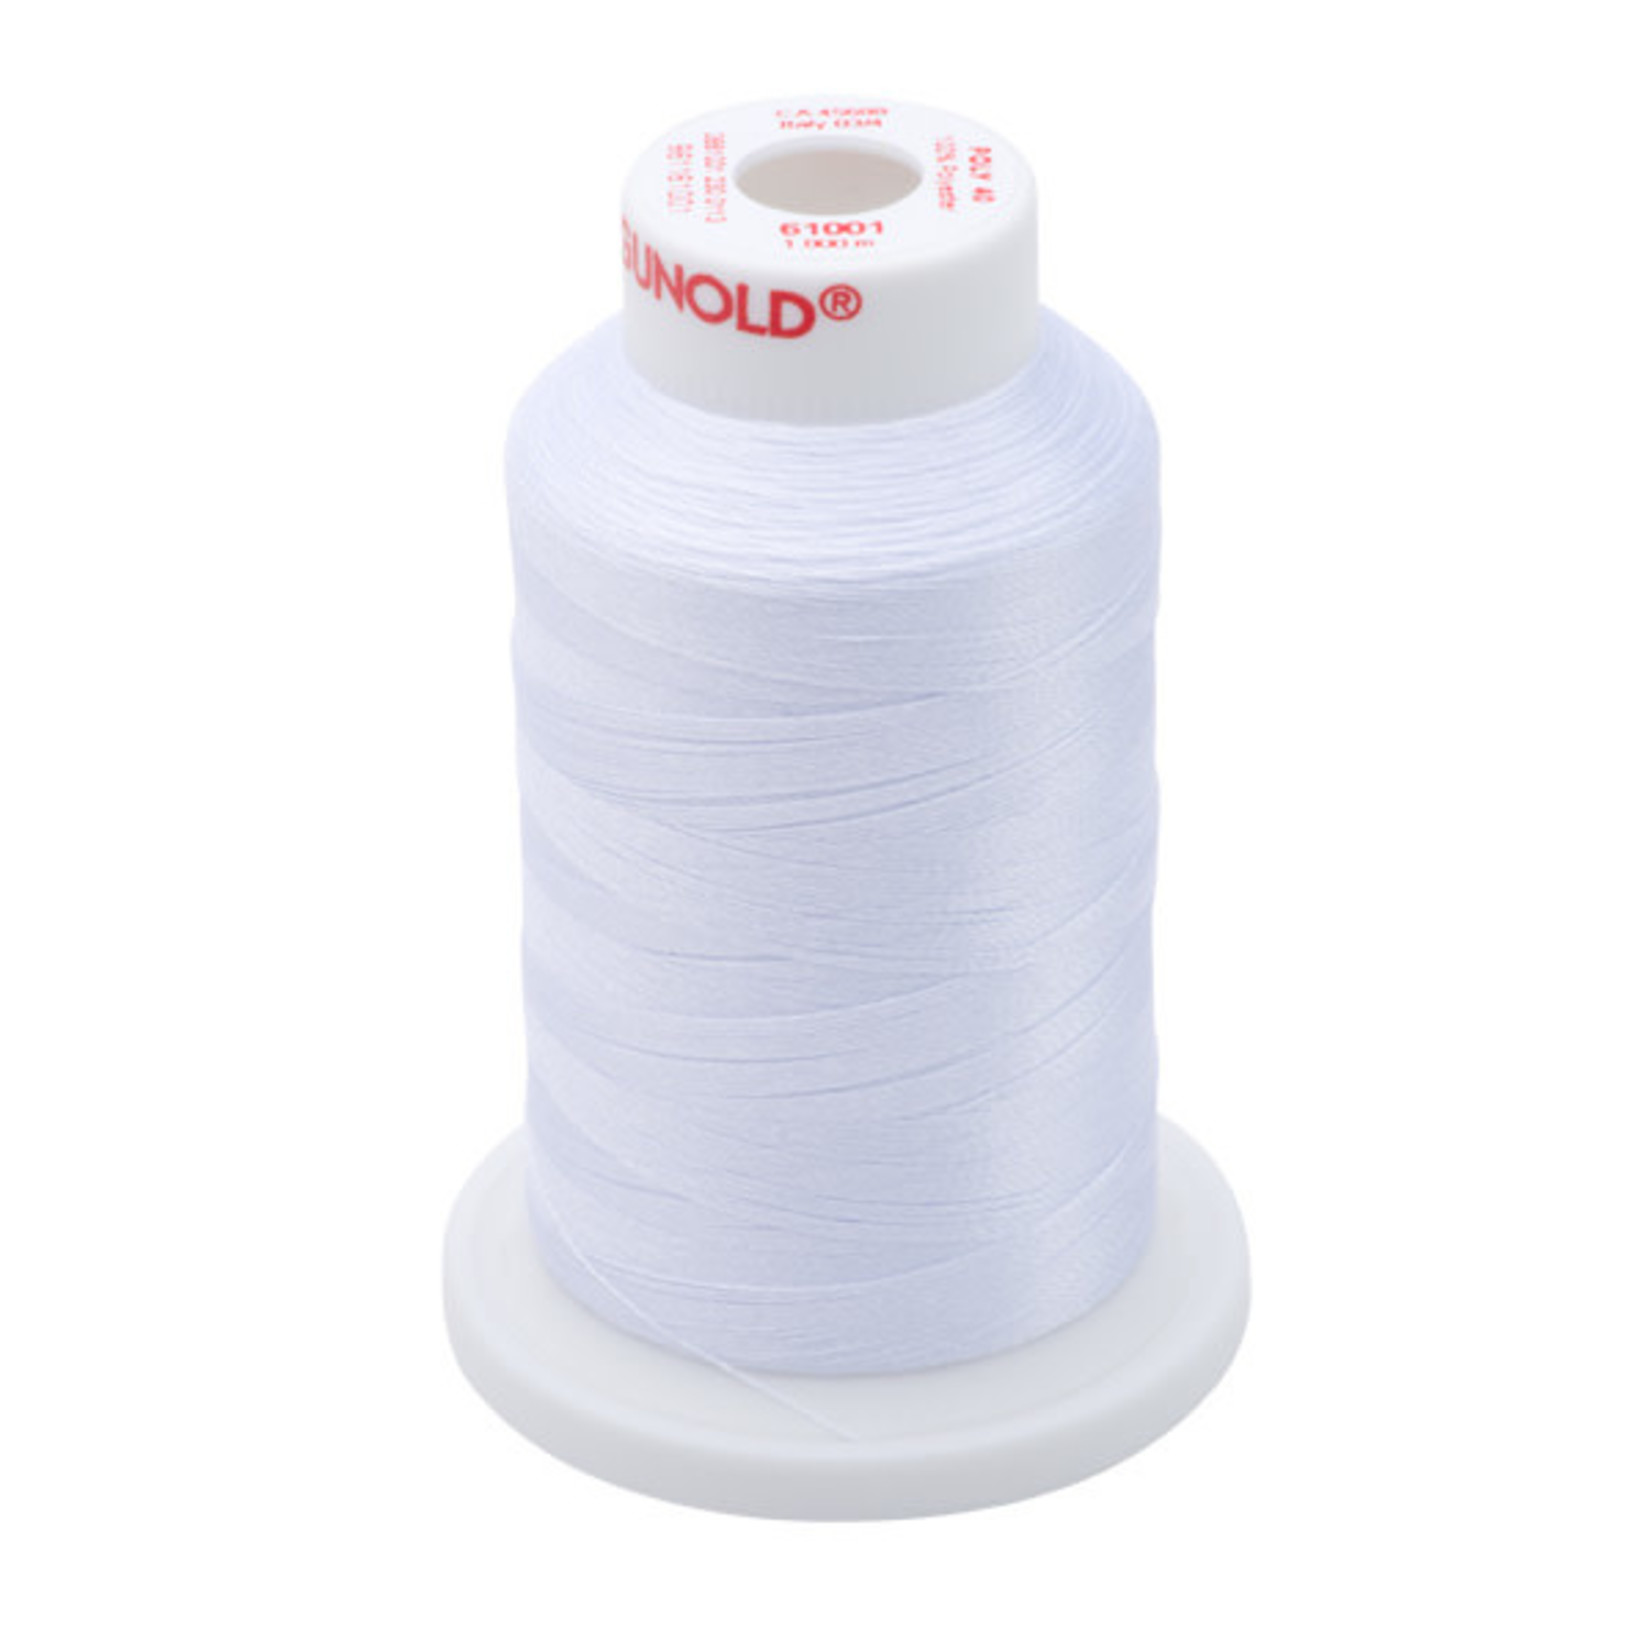 Gunold Poly 40 WT 61001 Bright White 1000m